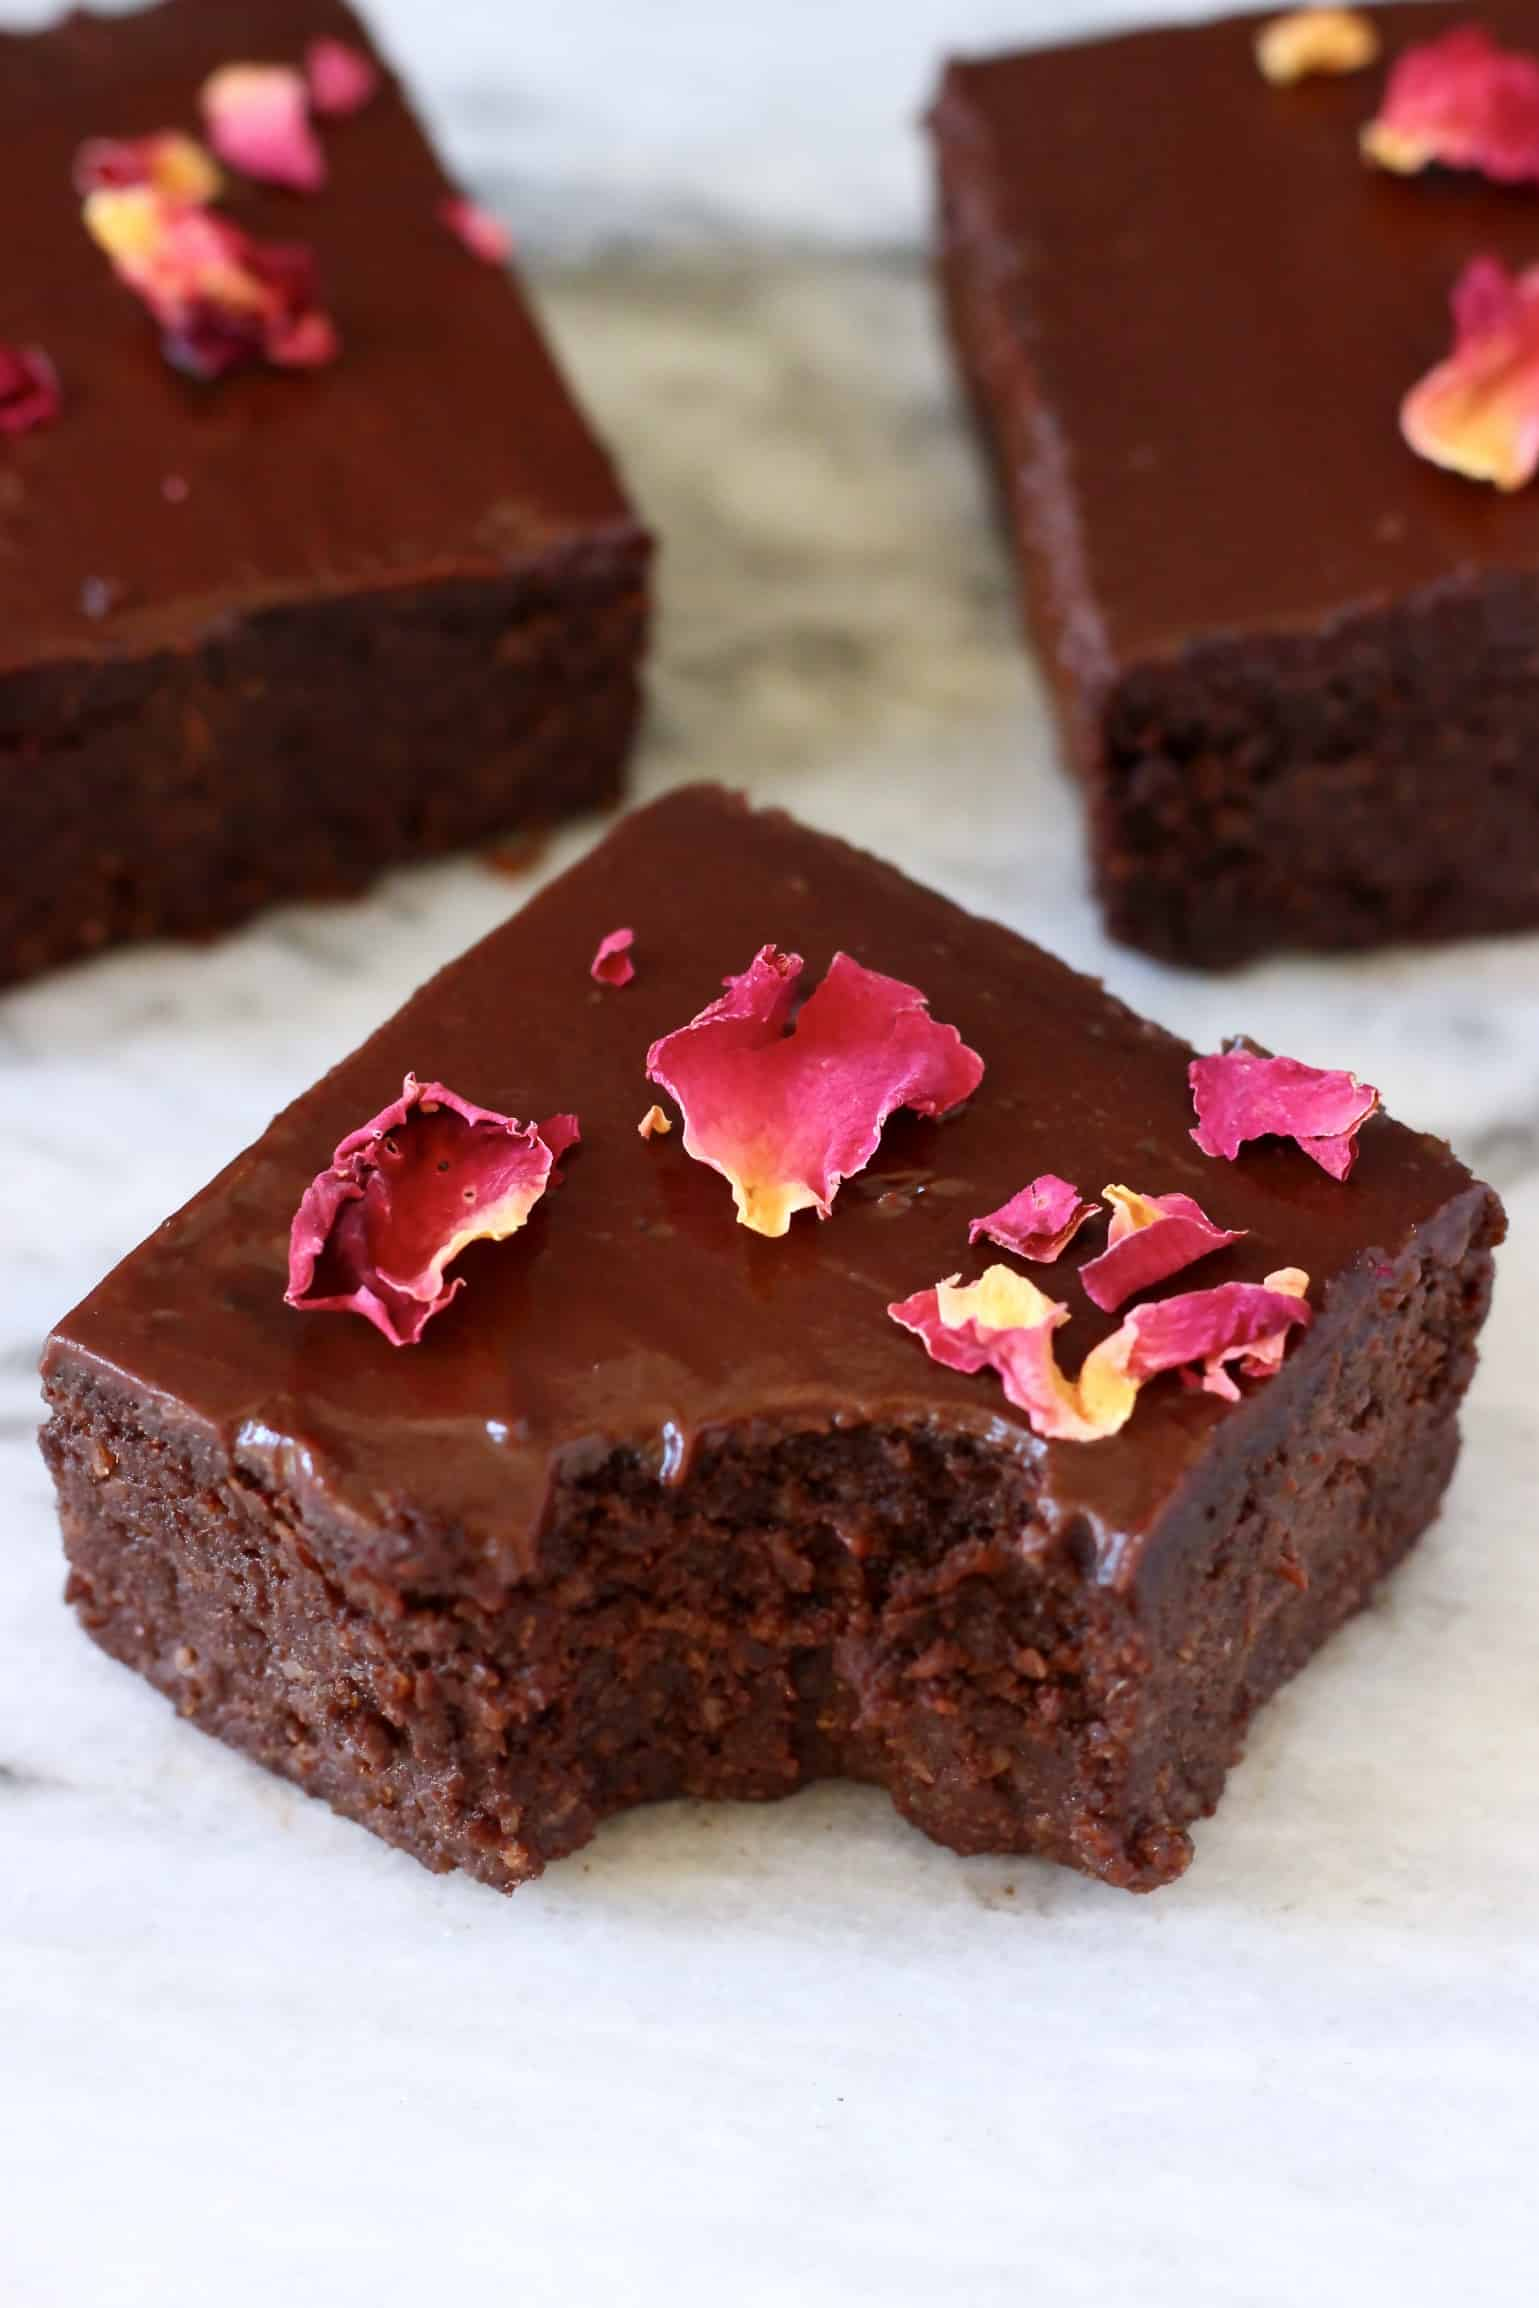 Three avocado brownies with chocolate frosting and rose petals with a bite taken out of one